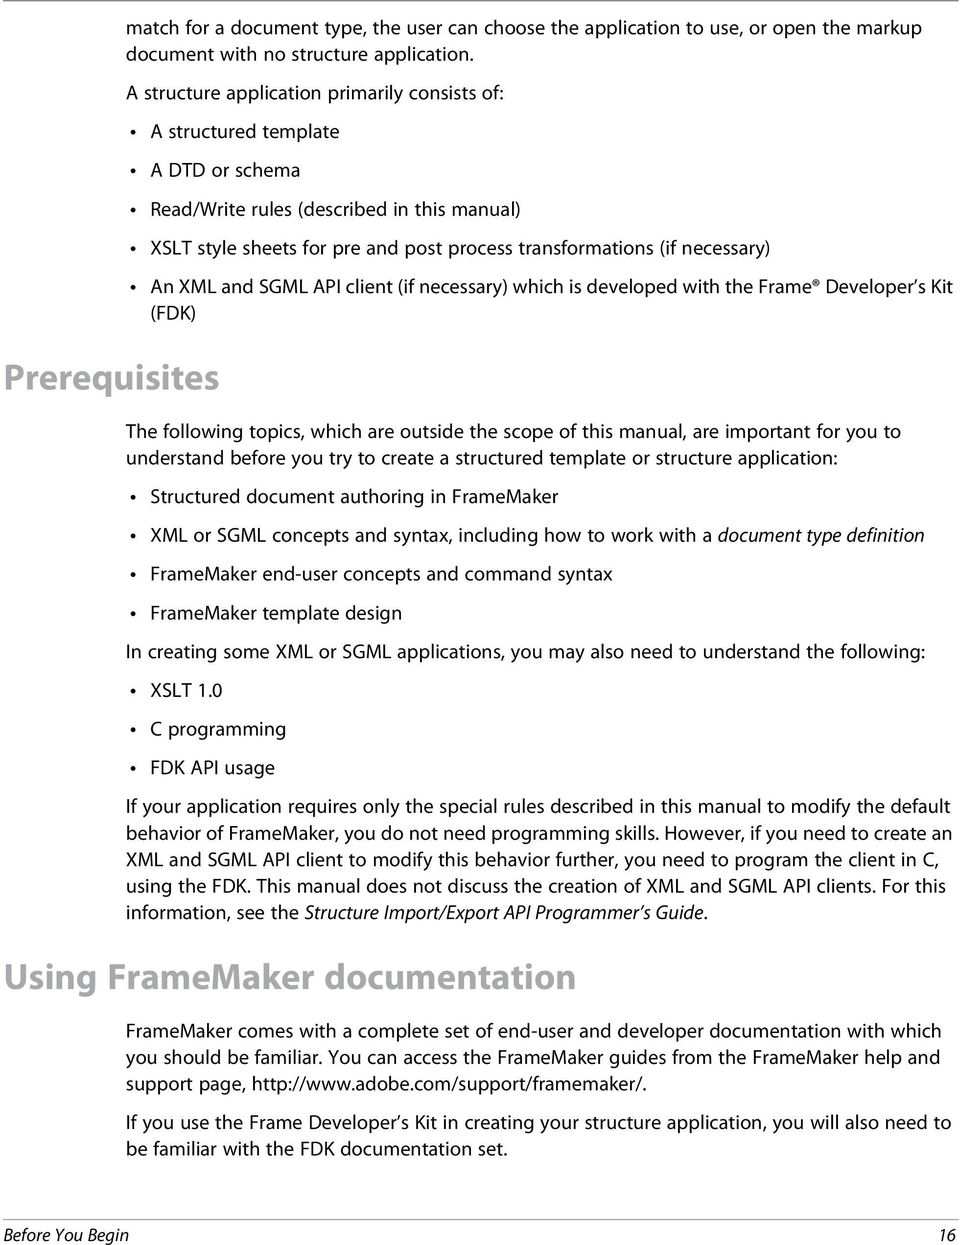 DEVELOPING STRUCTURED APPLICATIONS WITH ADOBE FRAMEMAKER 9 - PDF